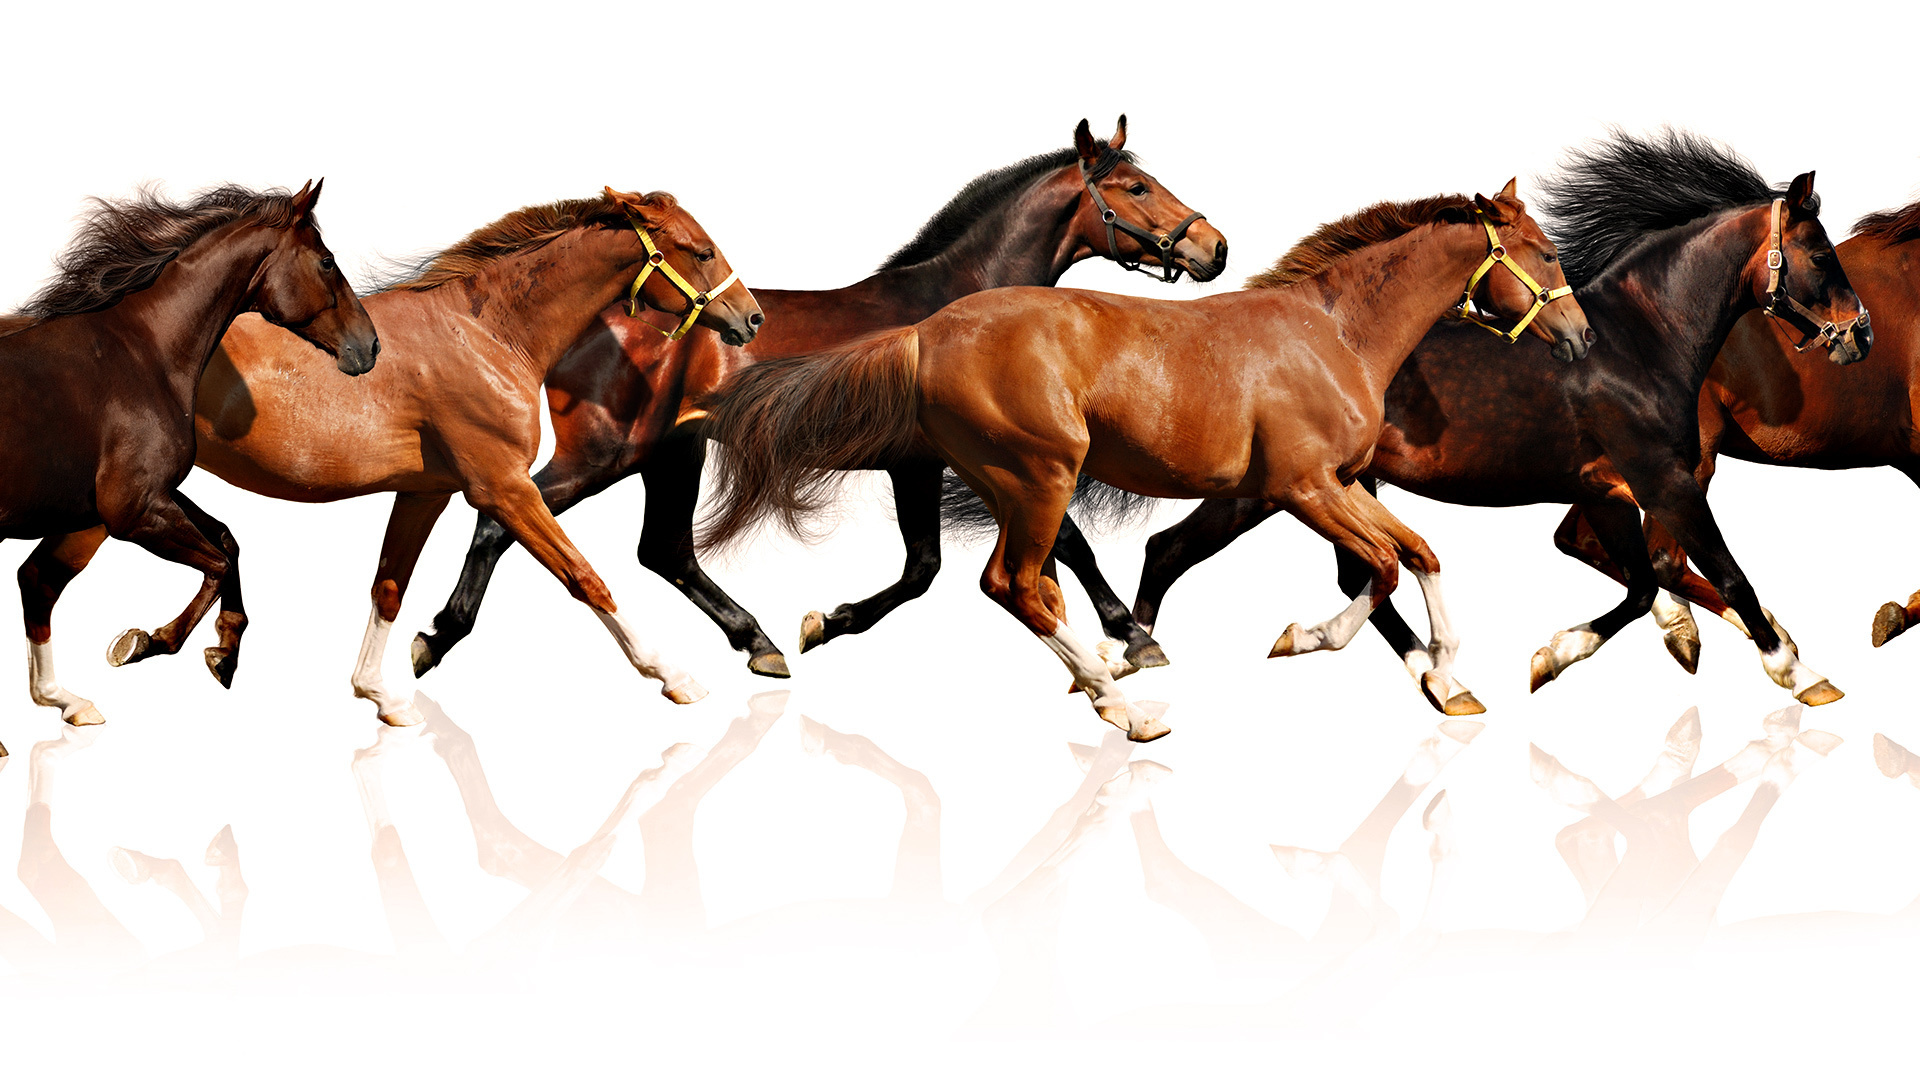 Horse Hd Wallpaper Background Image 1920x1080 Id 177185